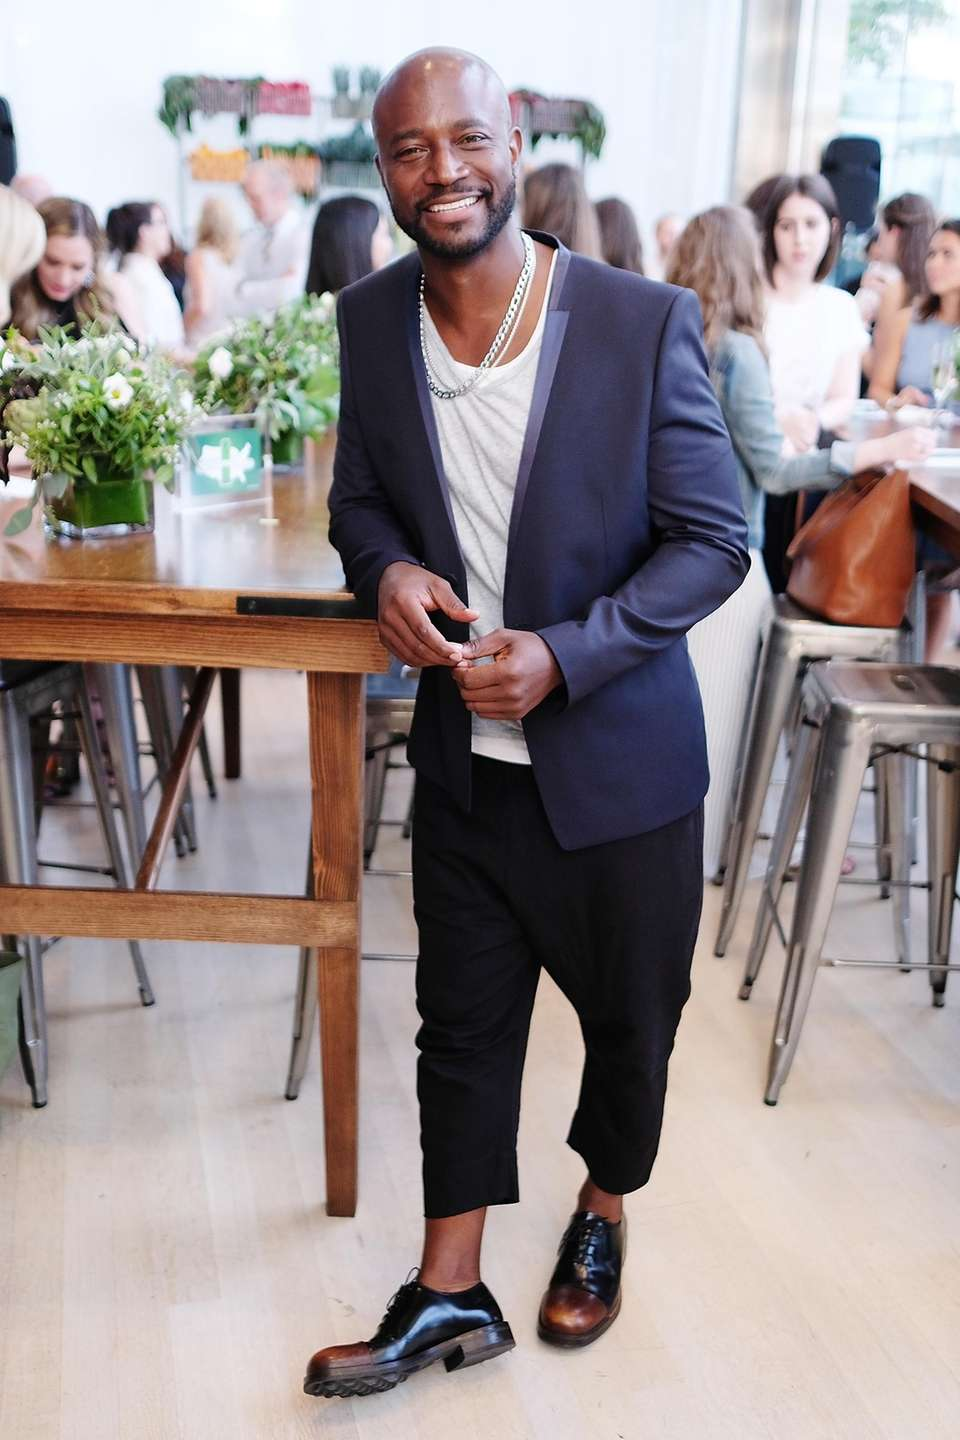 Taye Diggs attends the 2017 #DrinkGoodDoGood Campaign Launch